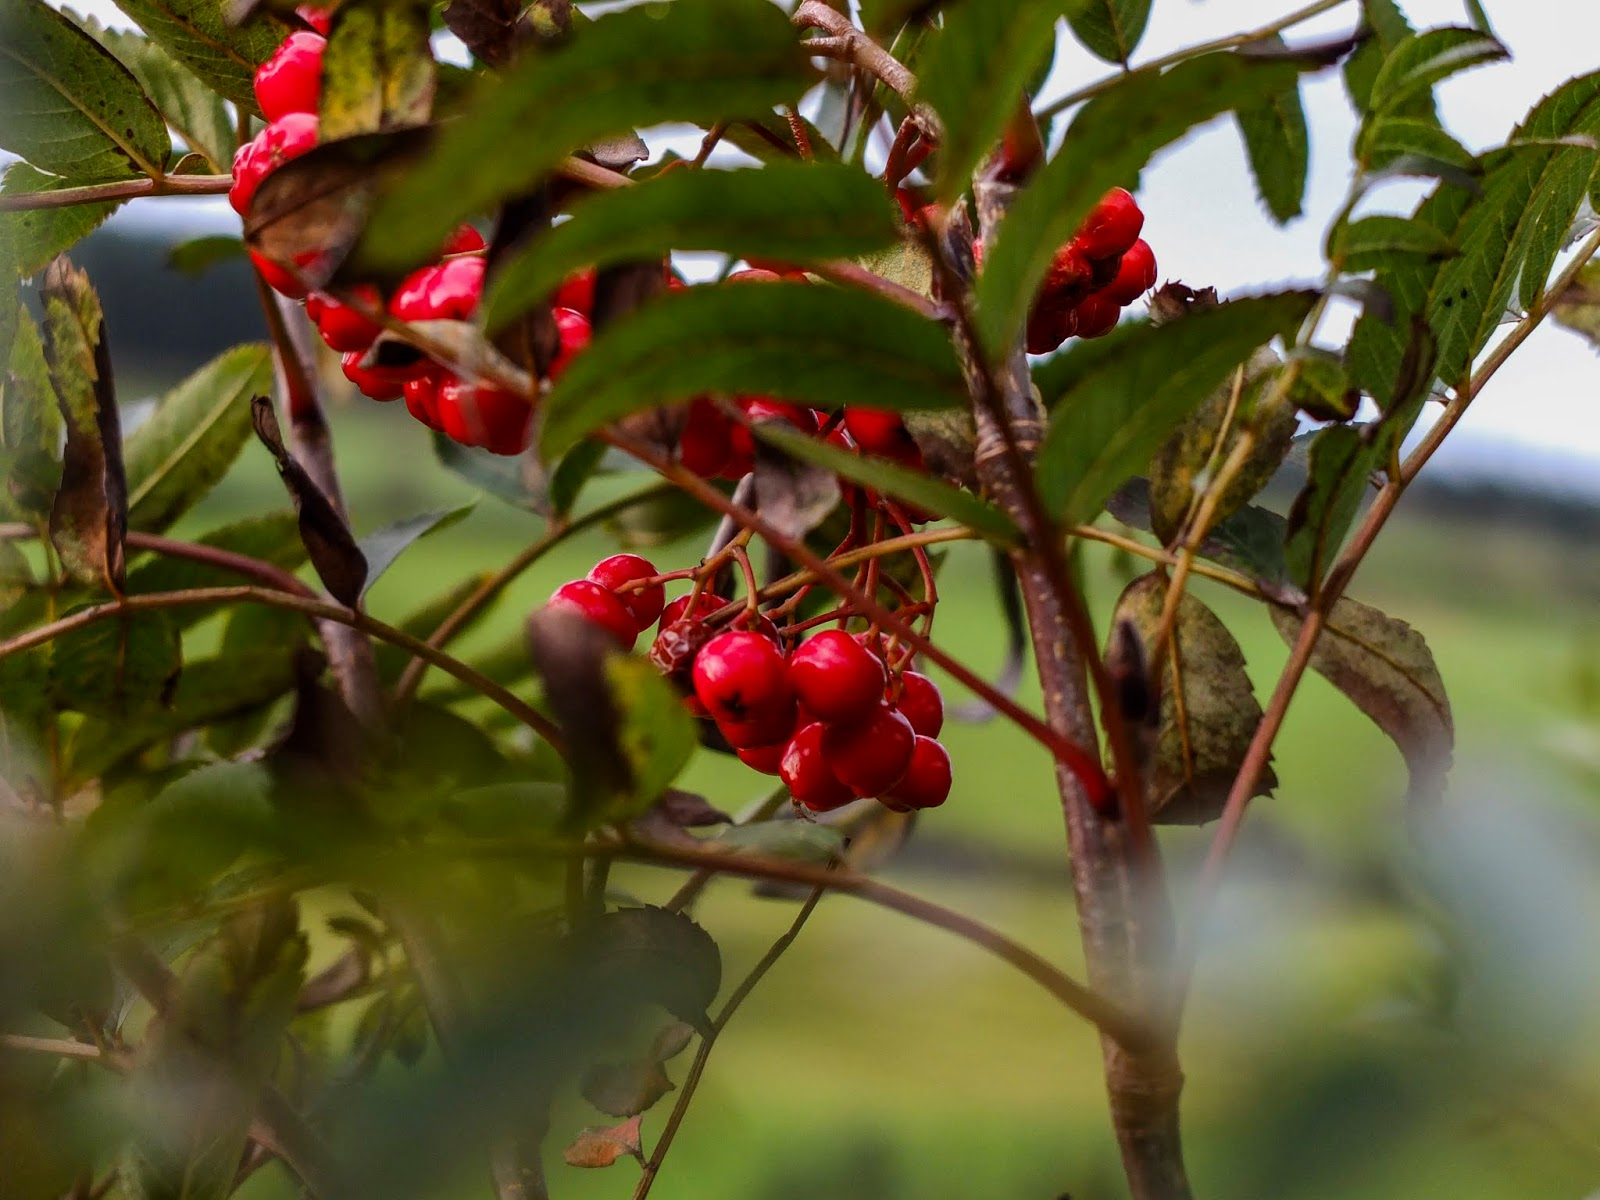 A close up of Mountain Ash berries hanging on a tree.